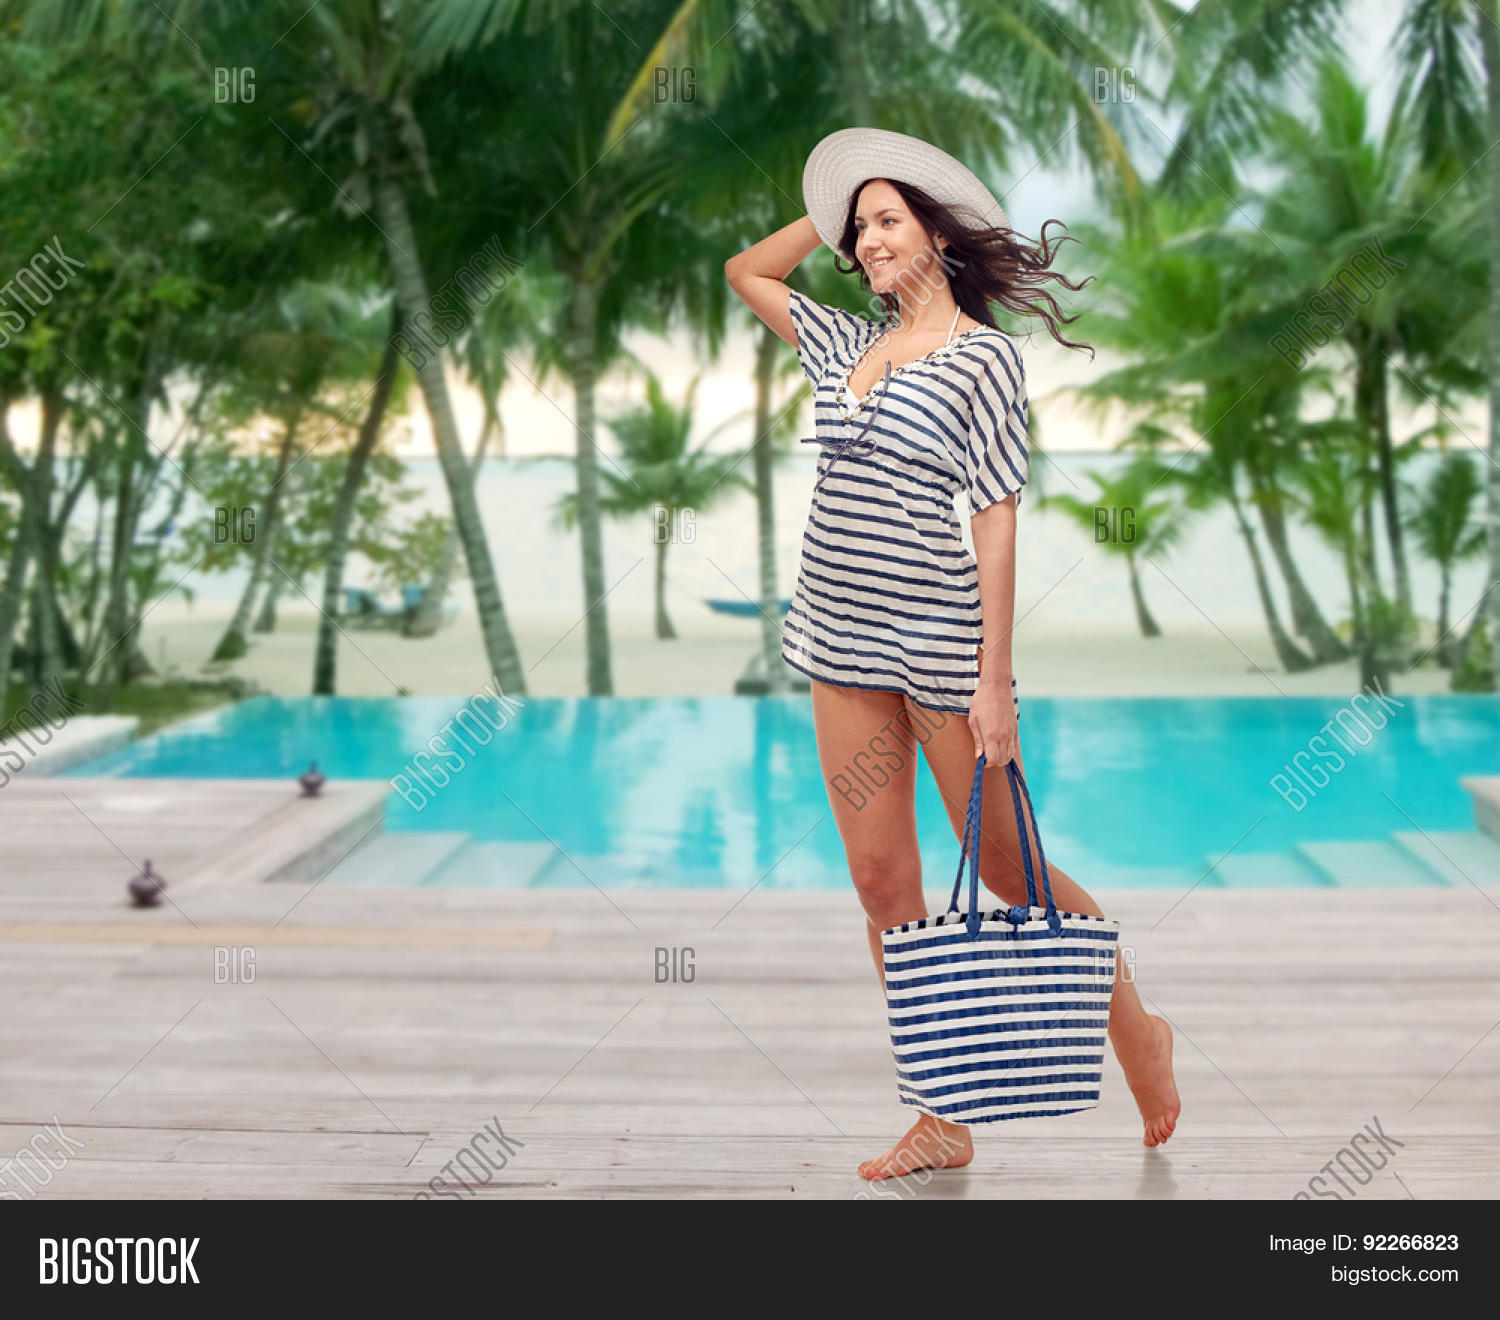 People Fashion Summer And Beach Concept Hy Young Woman In Clothes